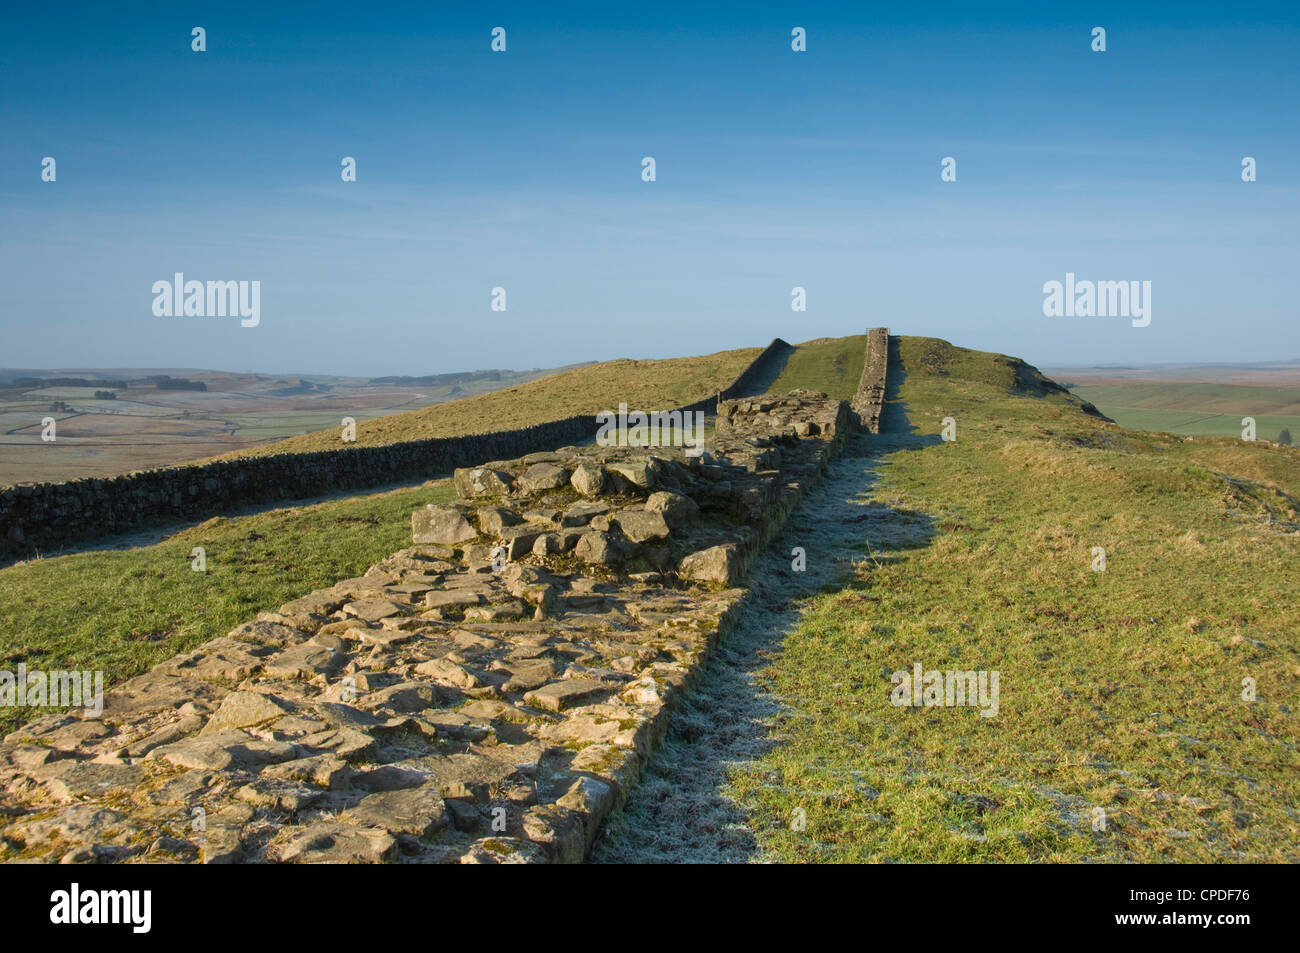 The width of the wall clearly seen looking west at Cawfields, Hadrians Wall, Northumbria, England, UK - Stock Image